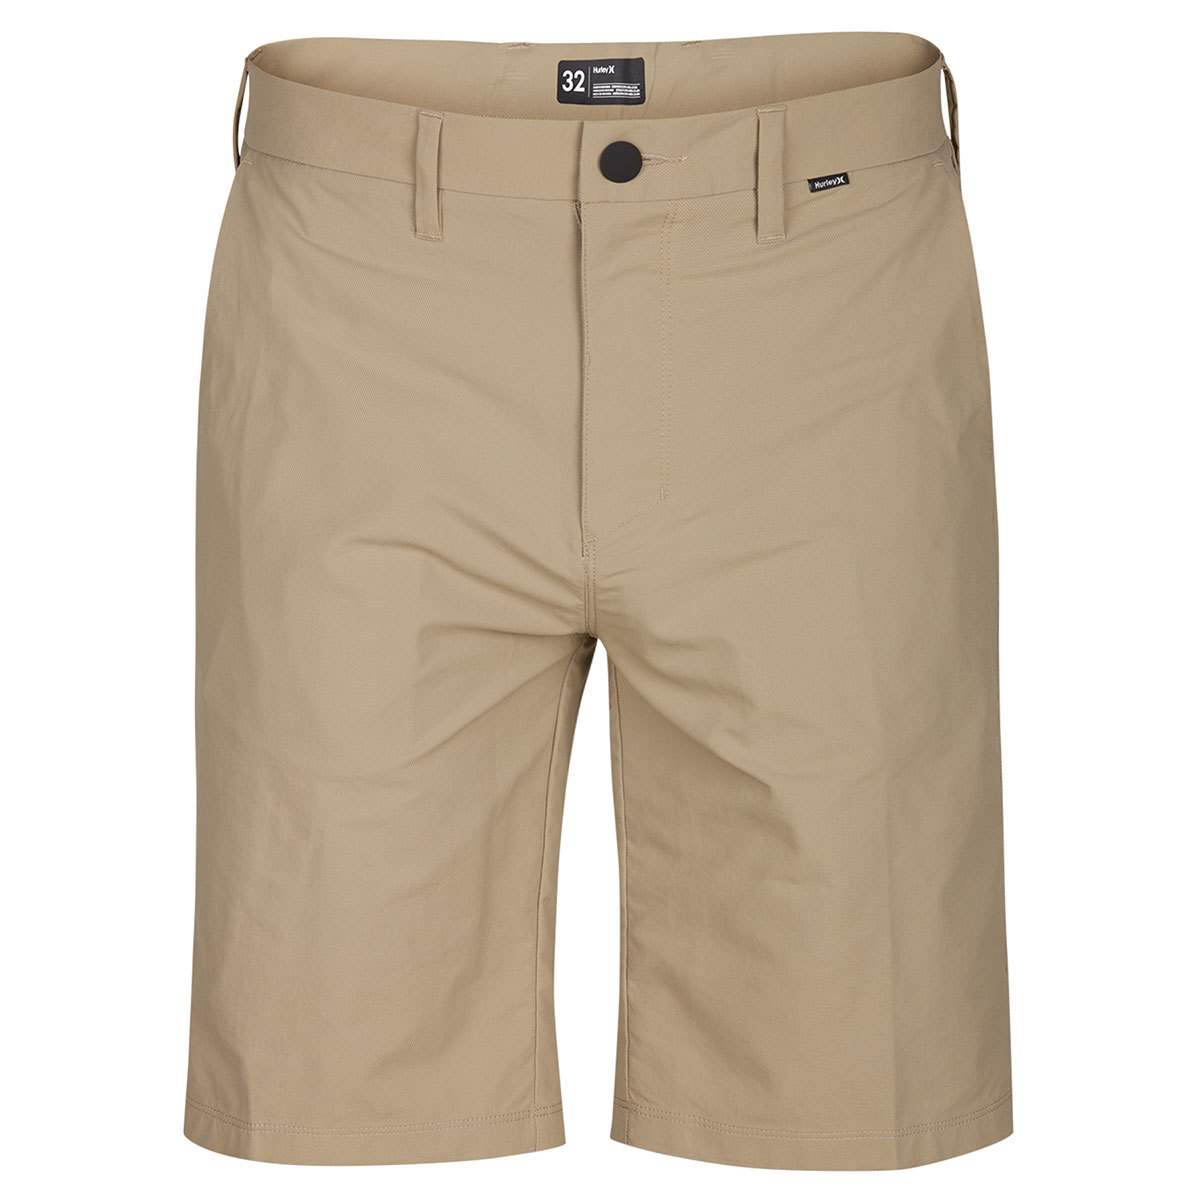 Hurley Guys' Dri-Fit Chino Shorts - Brown, 38